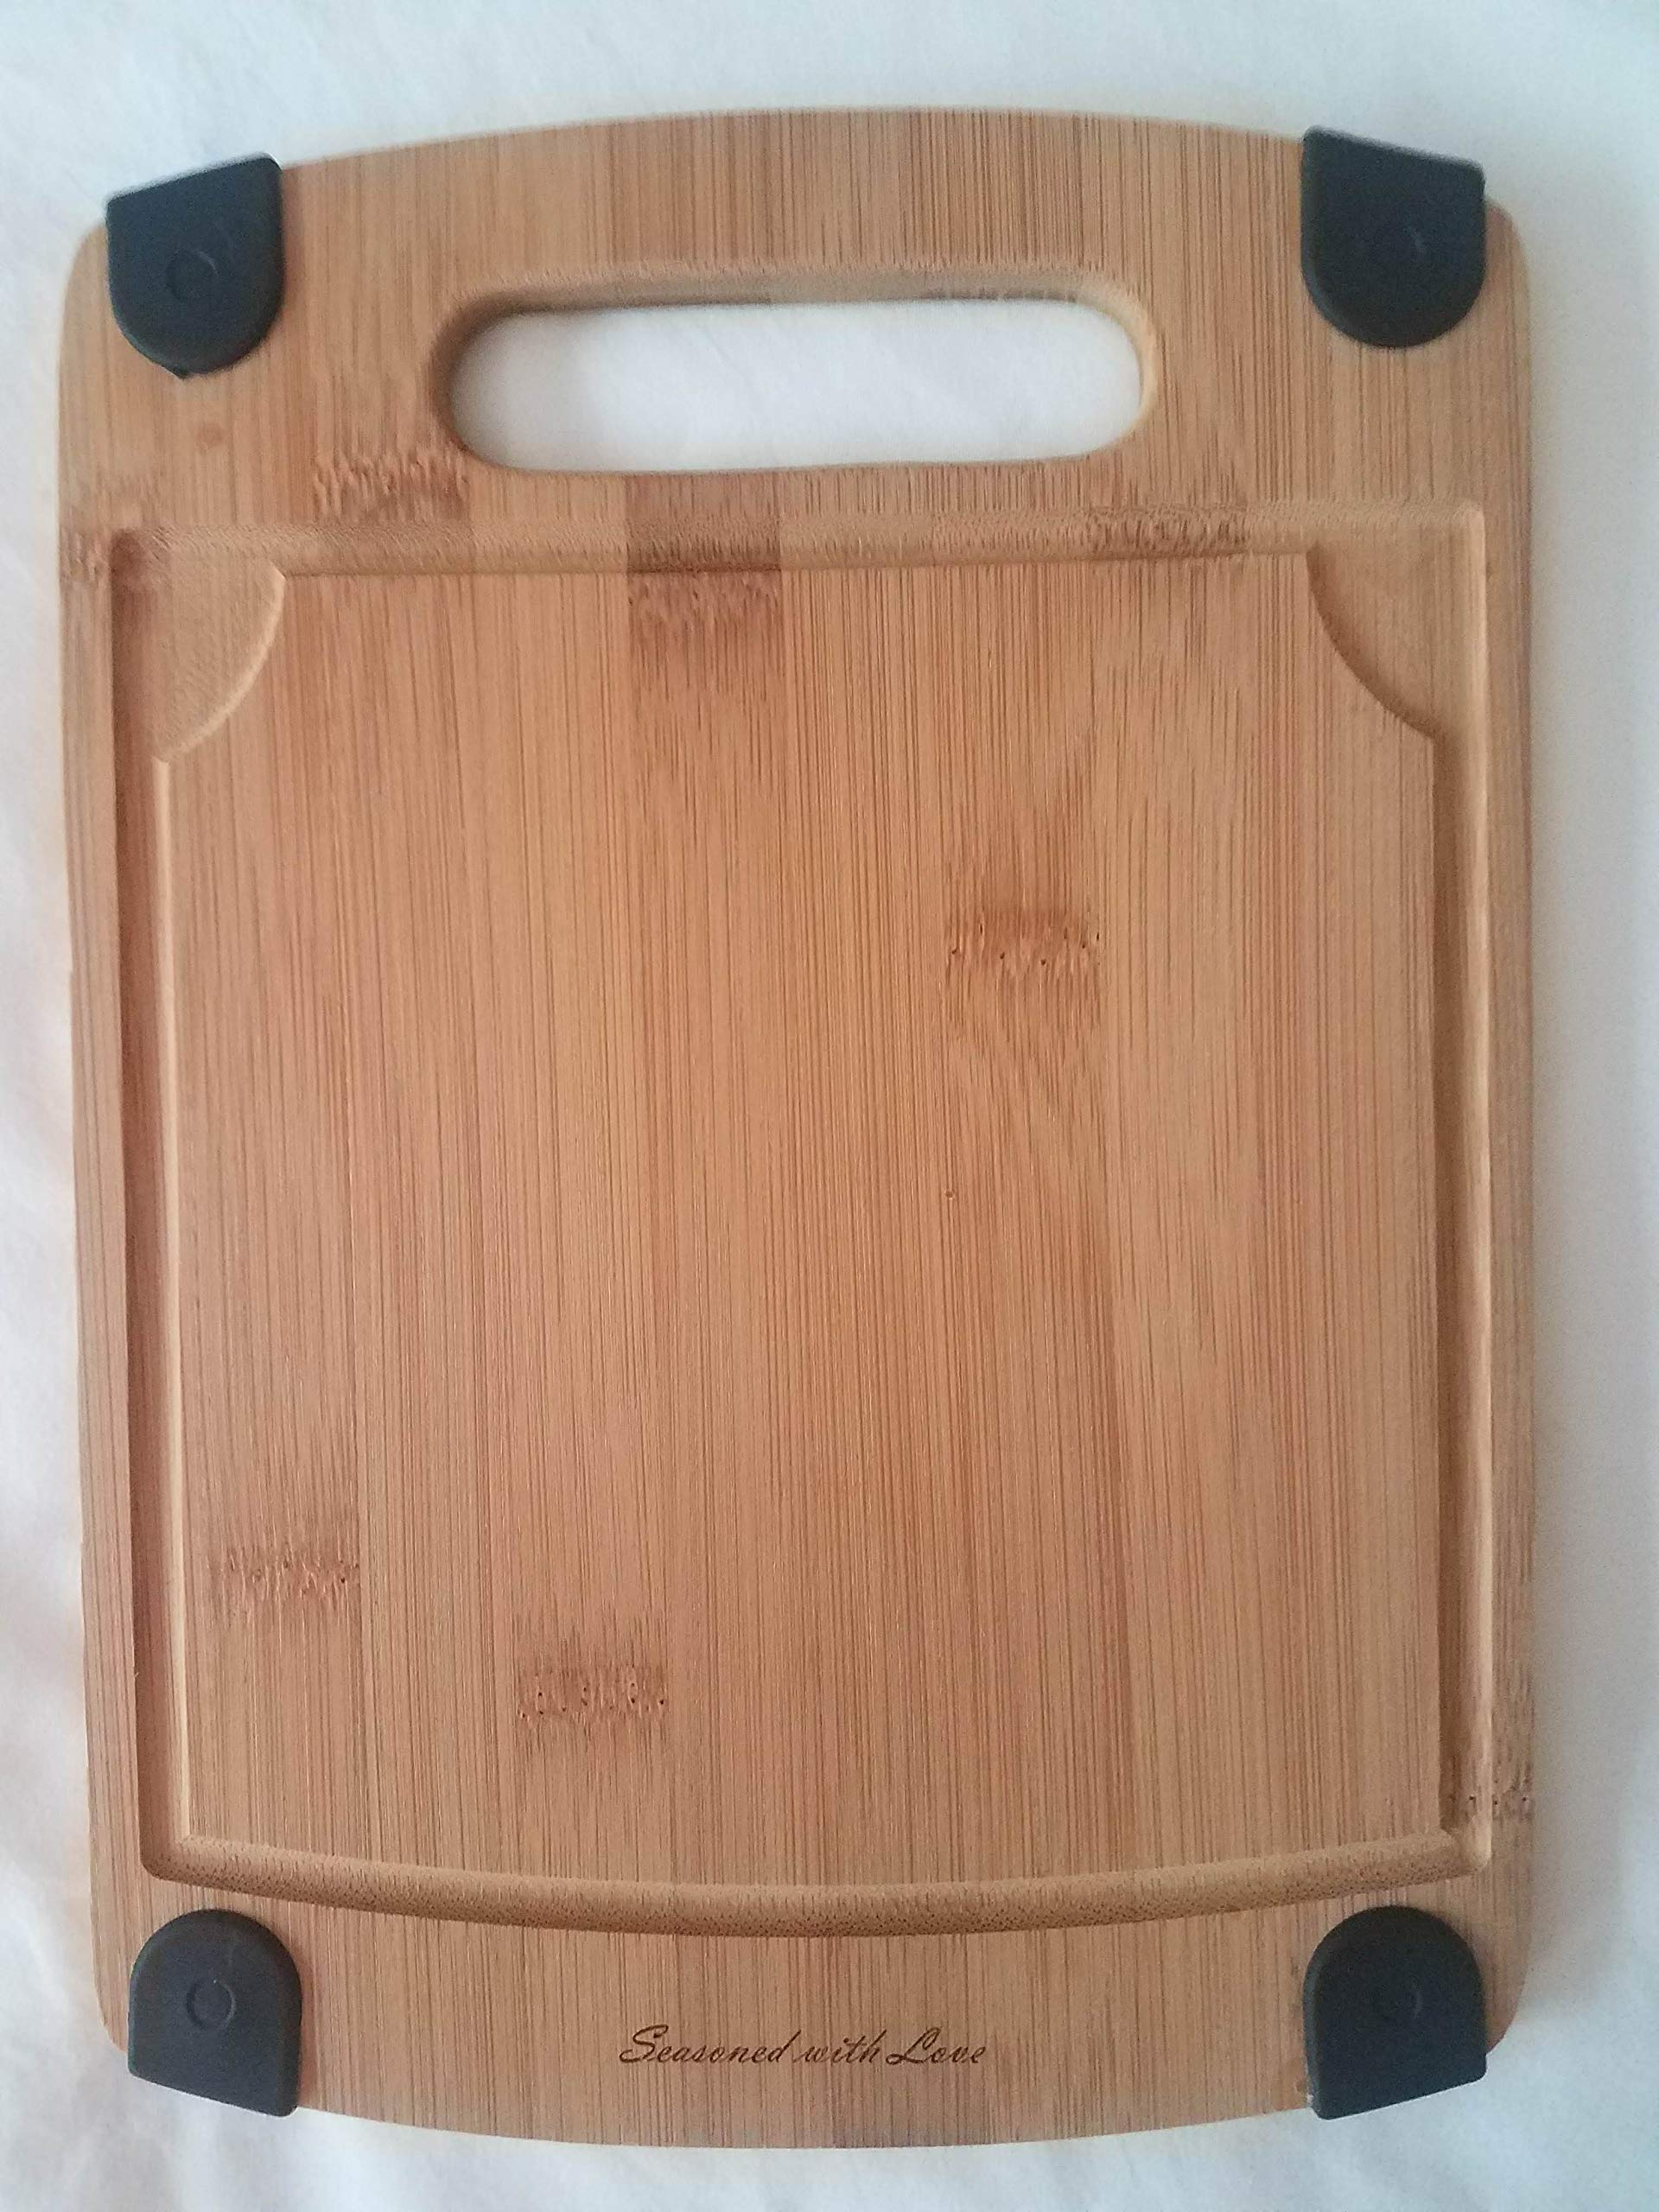 Organic Bamboo Cutting Board with Juice Grooves & non-slip rubber ends, Custom engraved with''Sprinkled with Love'', Premium Quality, Antibacterial Bamboo Chopping Board & Cheese & Fruit Tray, Kitchen